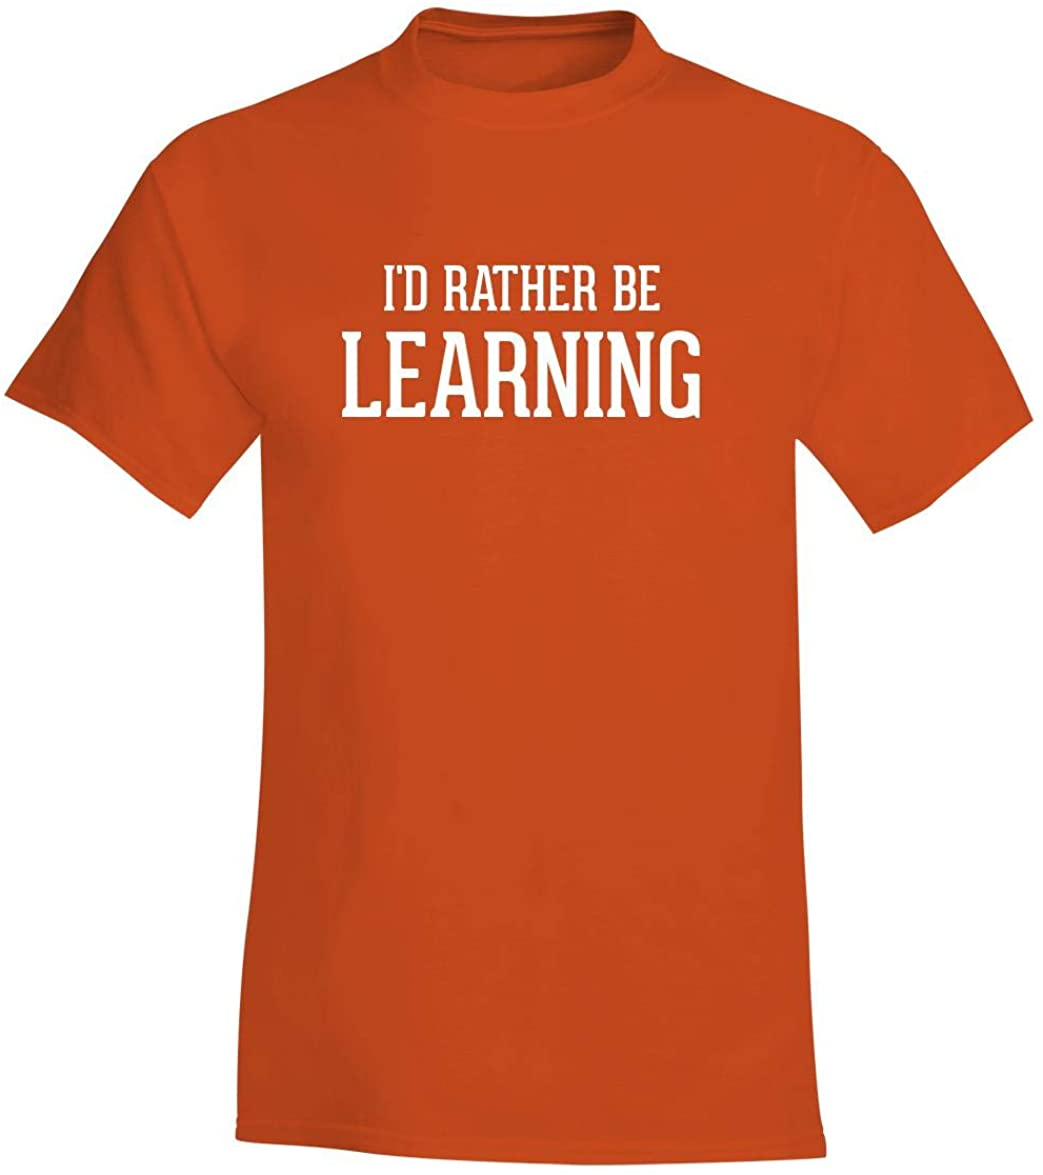 I'd Rather Be LEARNING - A Soft & Comfortable Men's T-Shirt